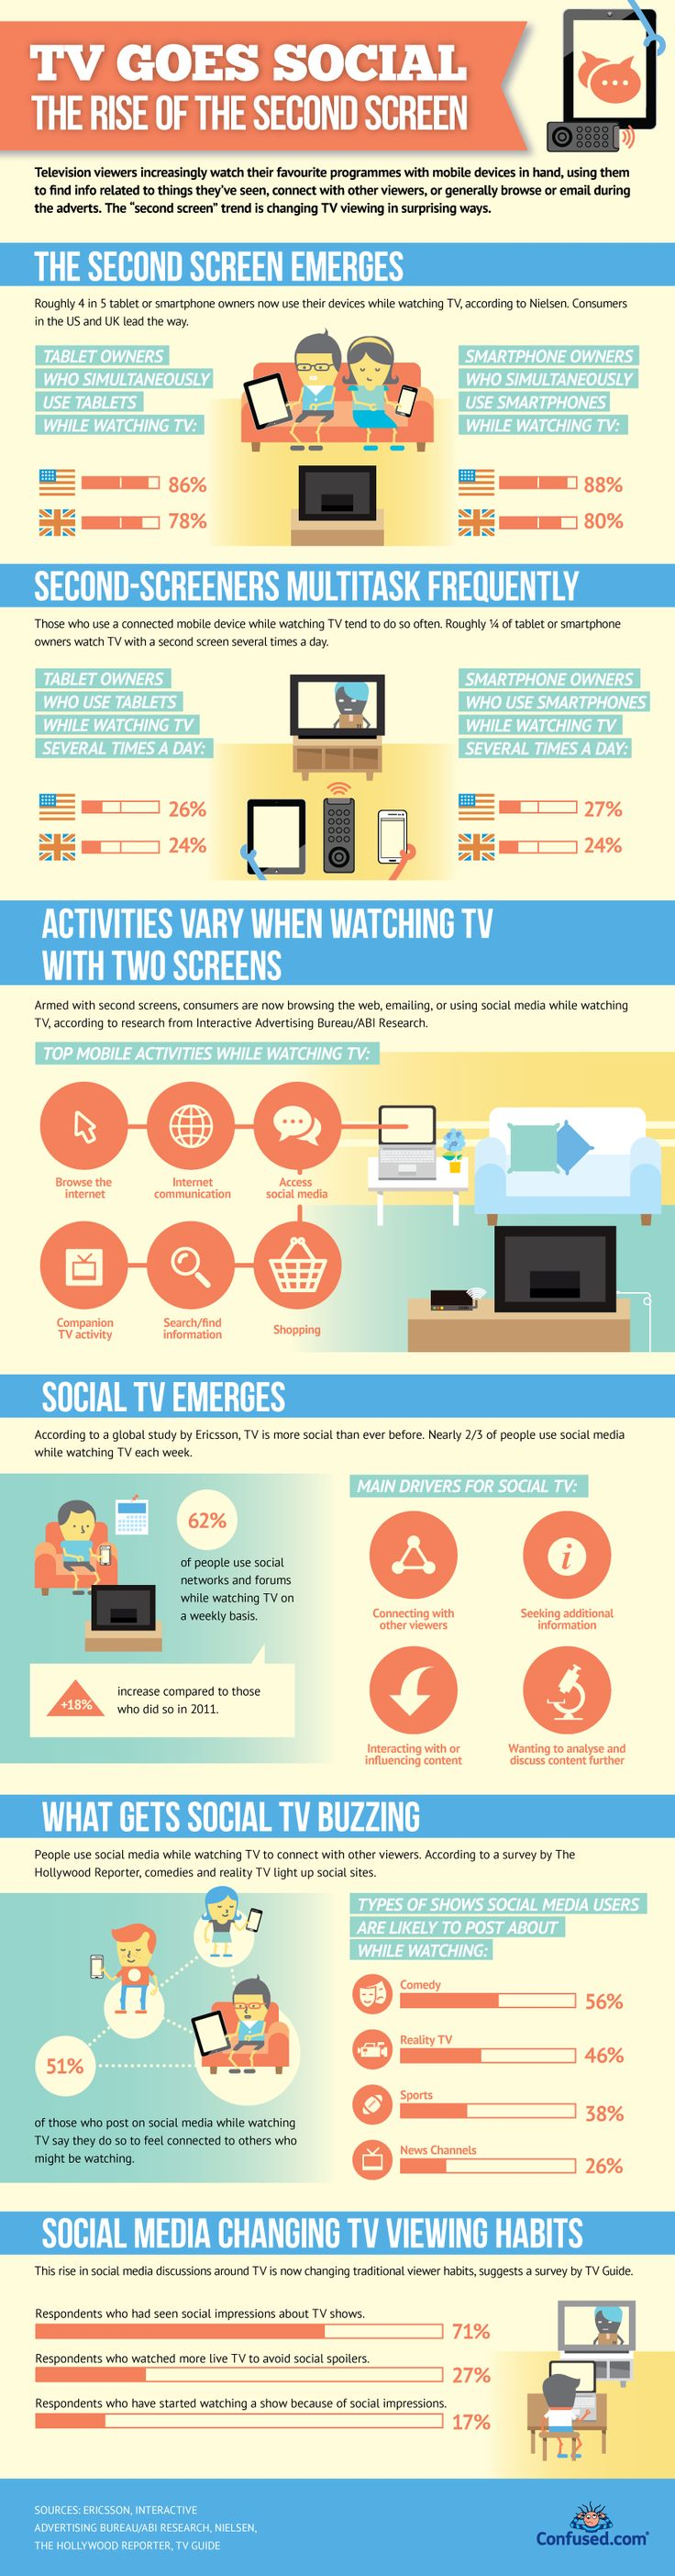 TV Goes Social - The Rise Of The Second Screen [INFOGRAPHIC]